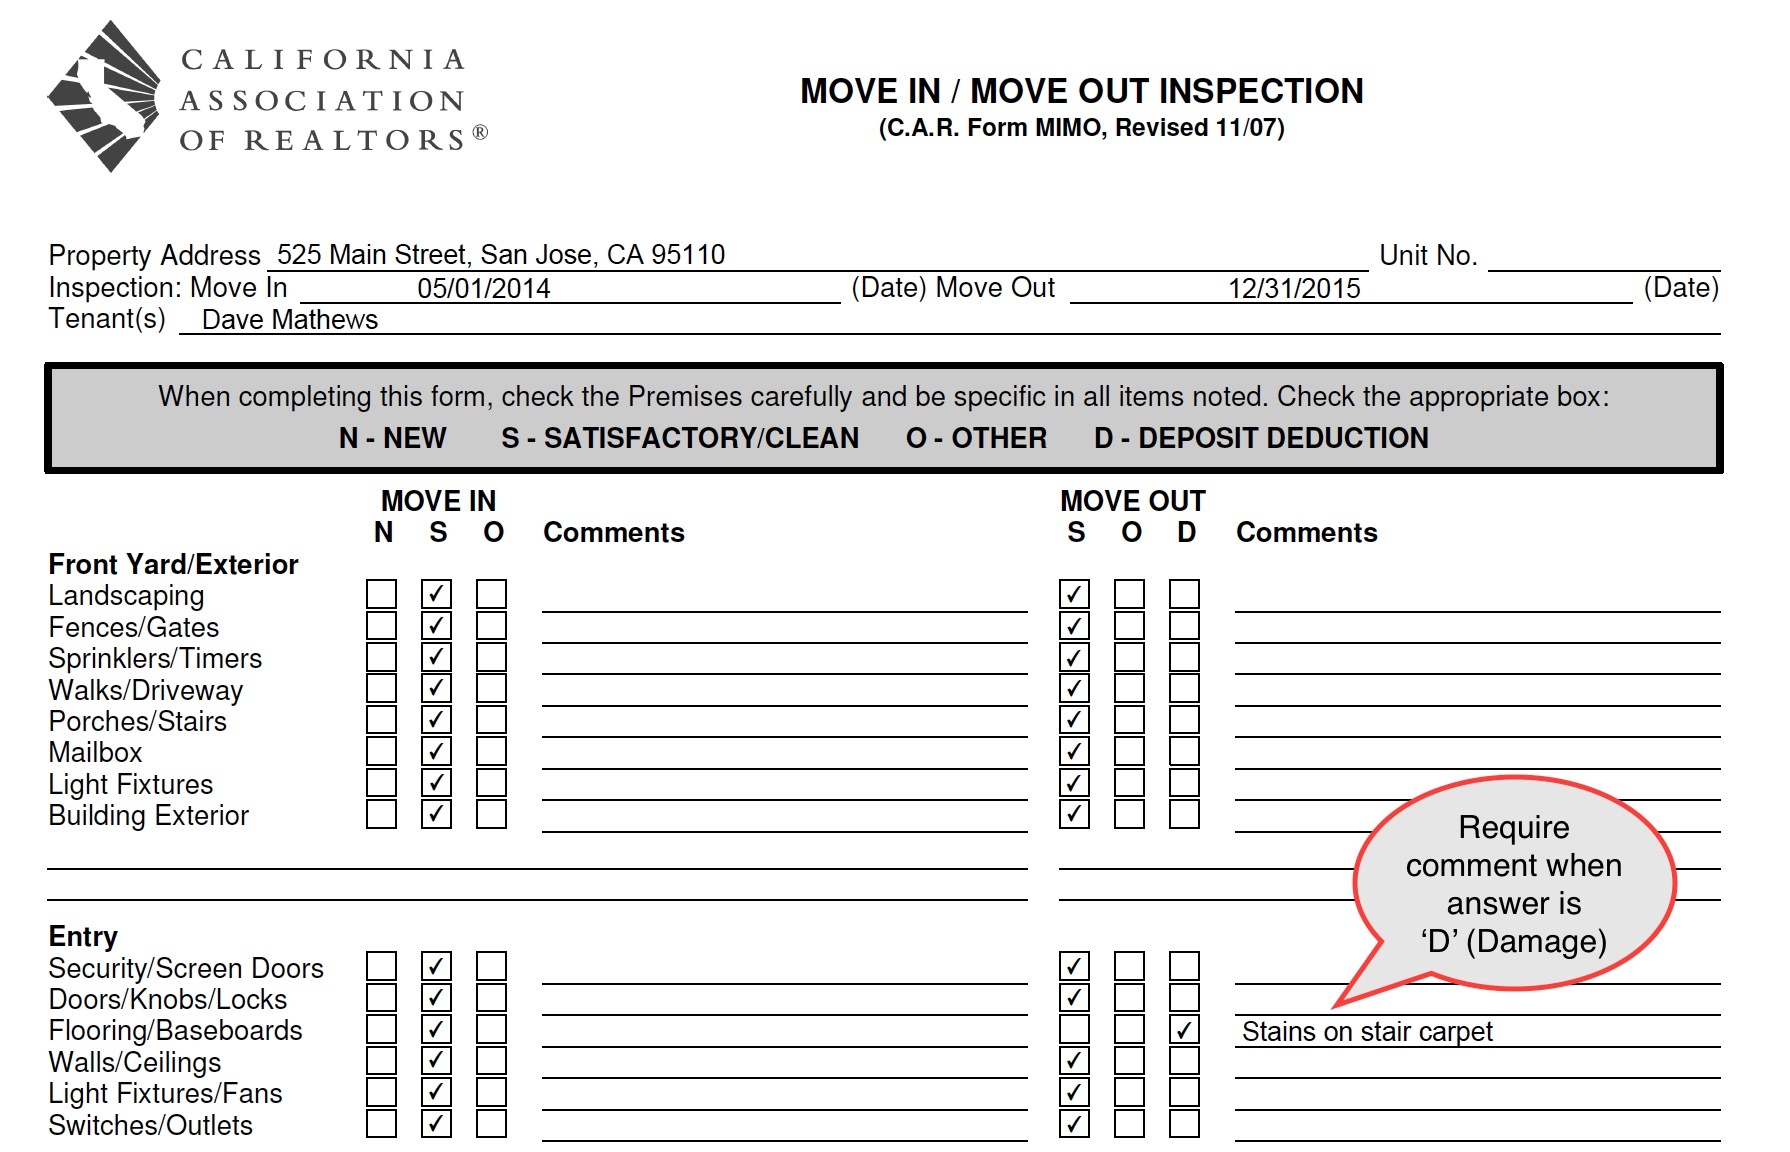 View Move-In Move-Out Inspection Report